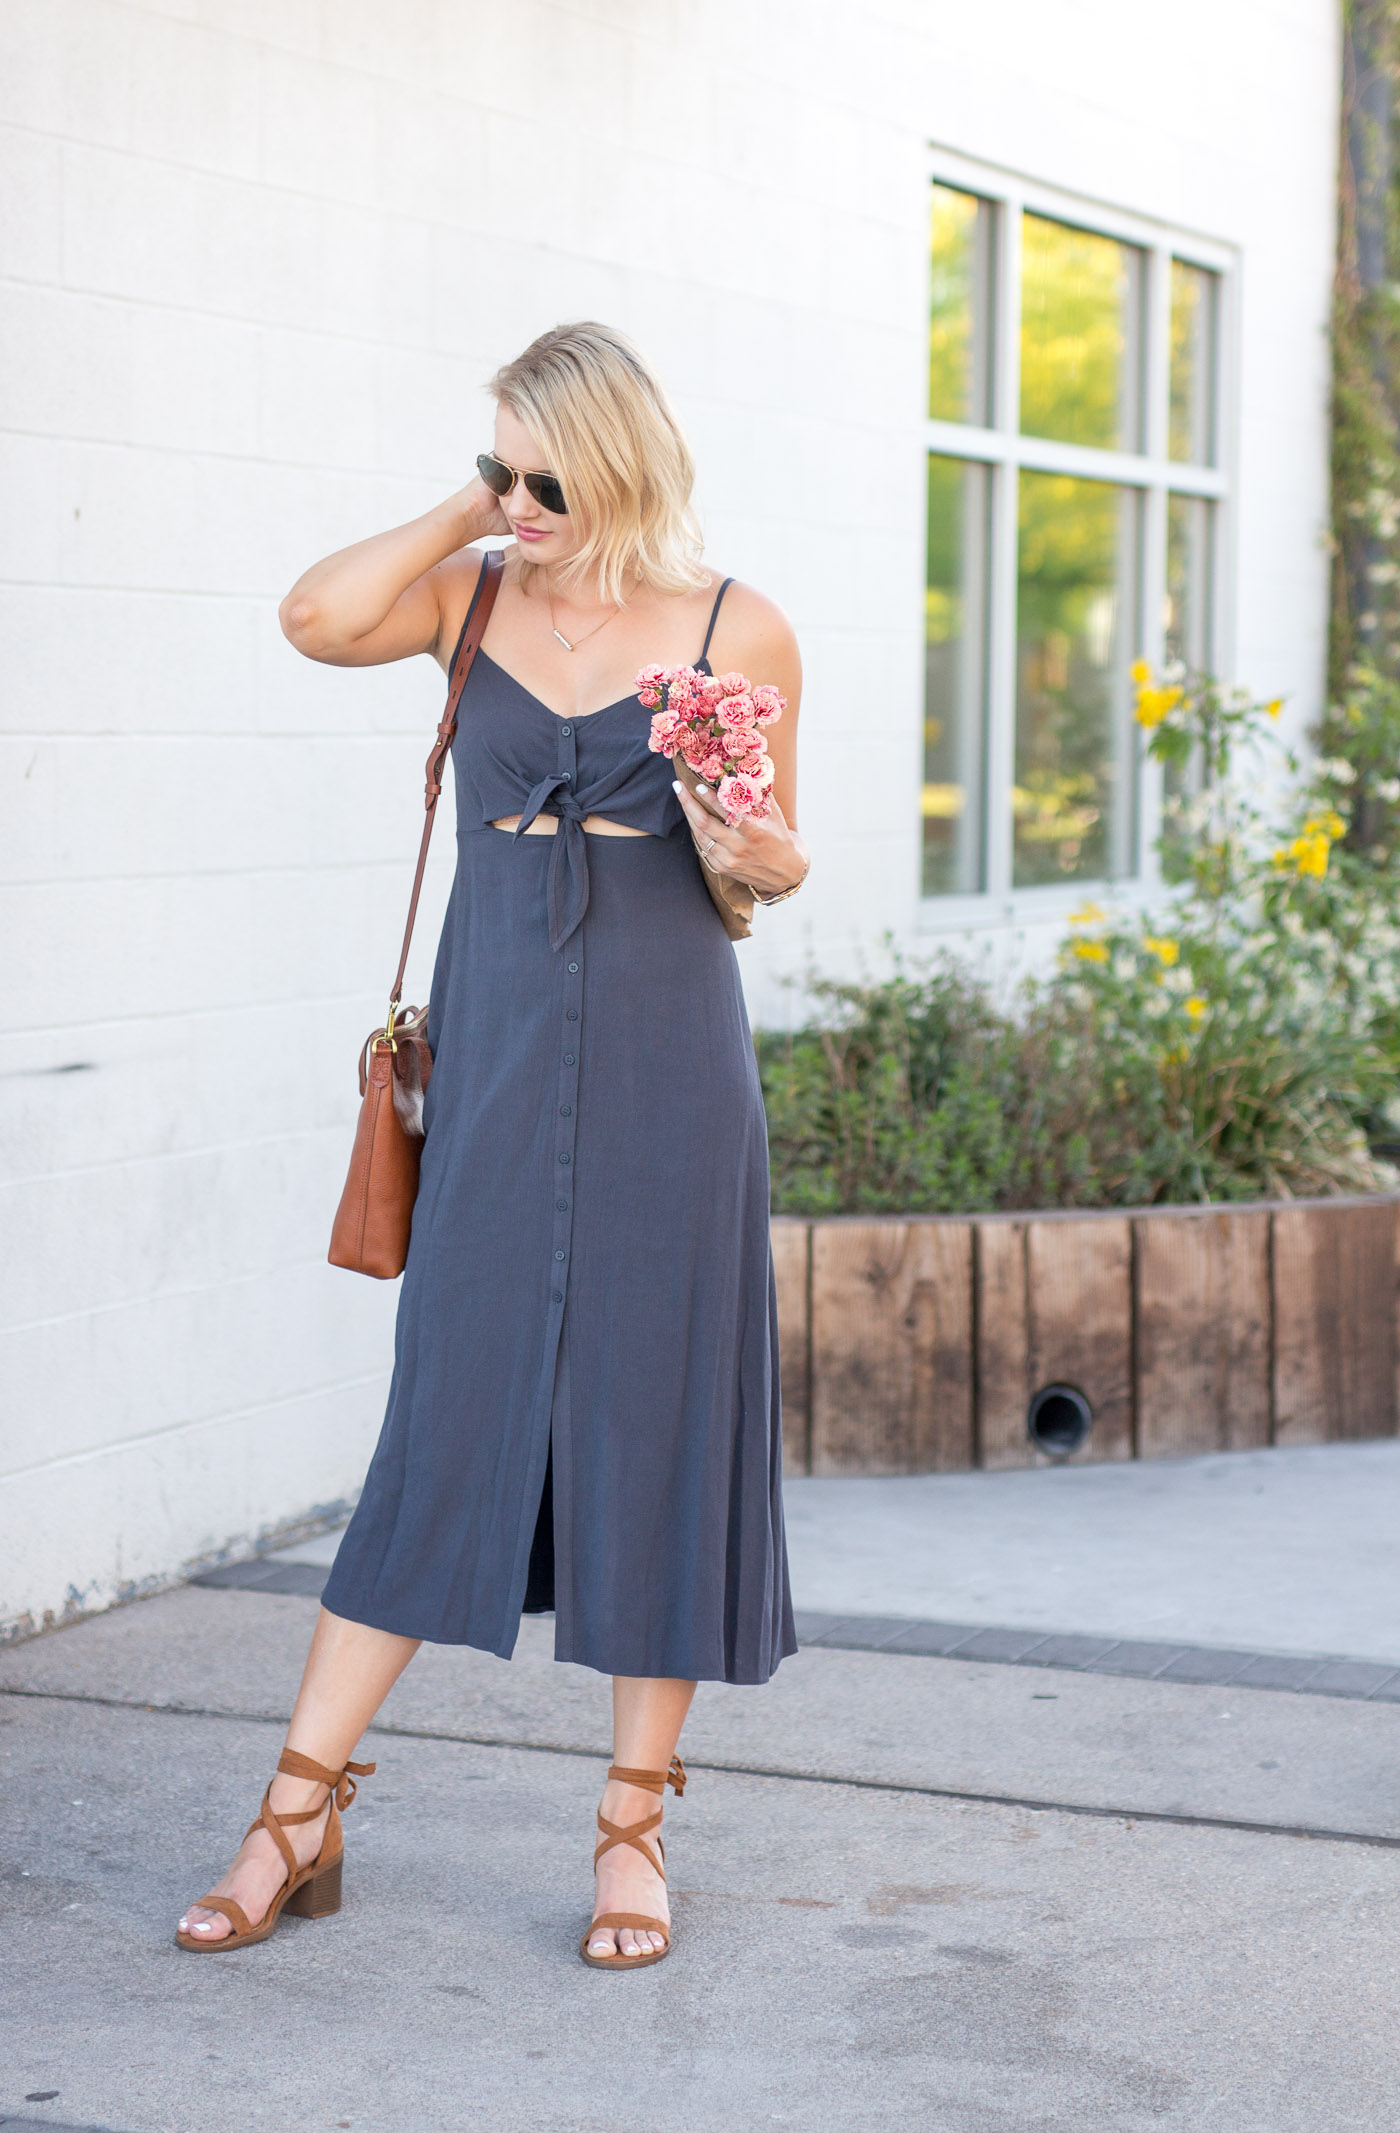 3cae9cccb59 The Perfect Midi Dress for a Heat Wave - Treats and Trends